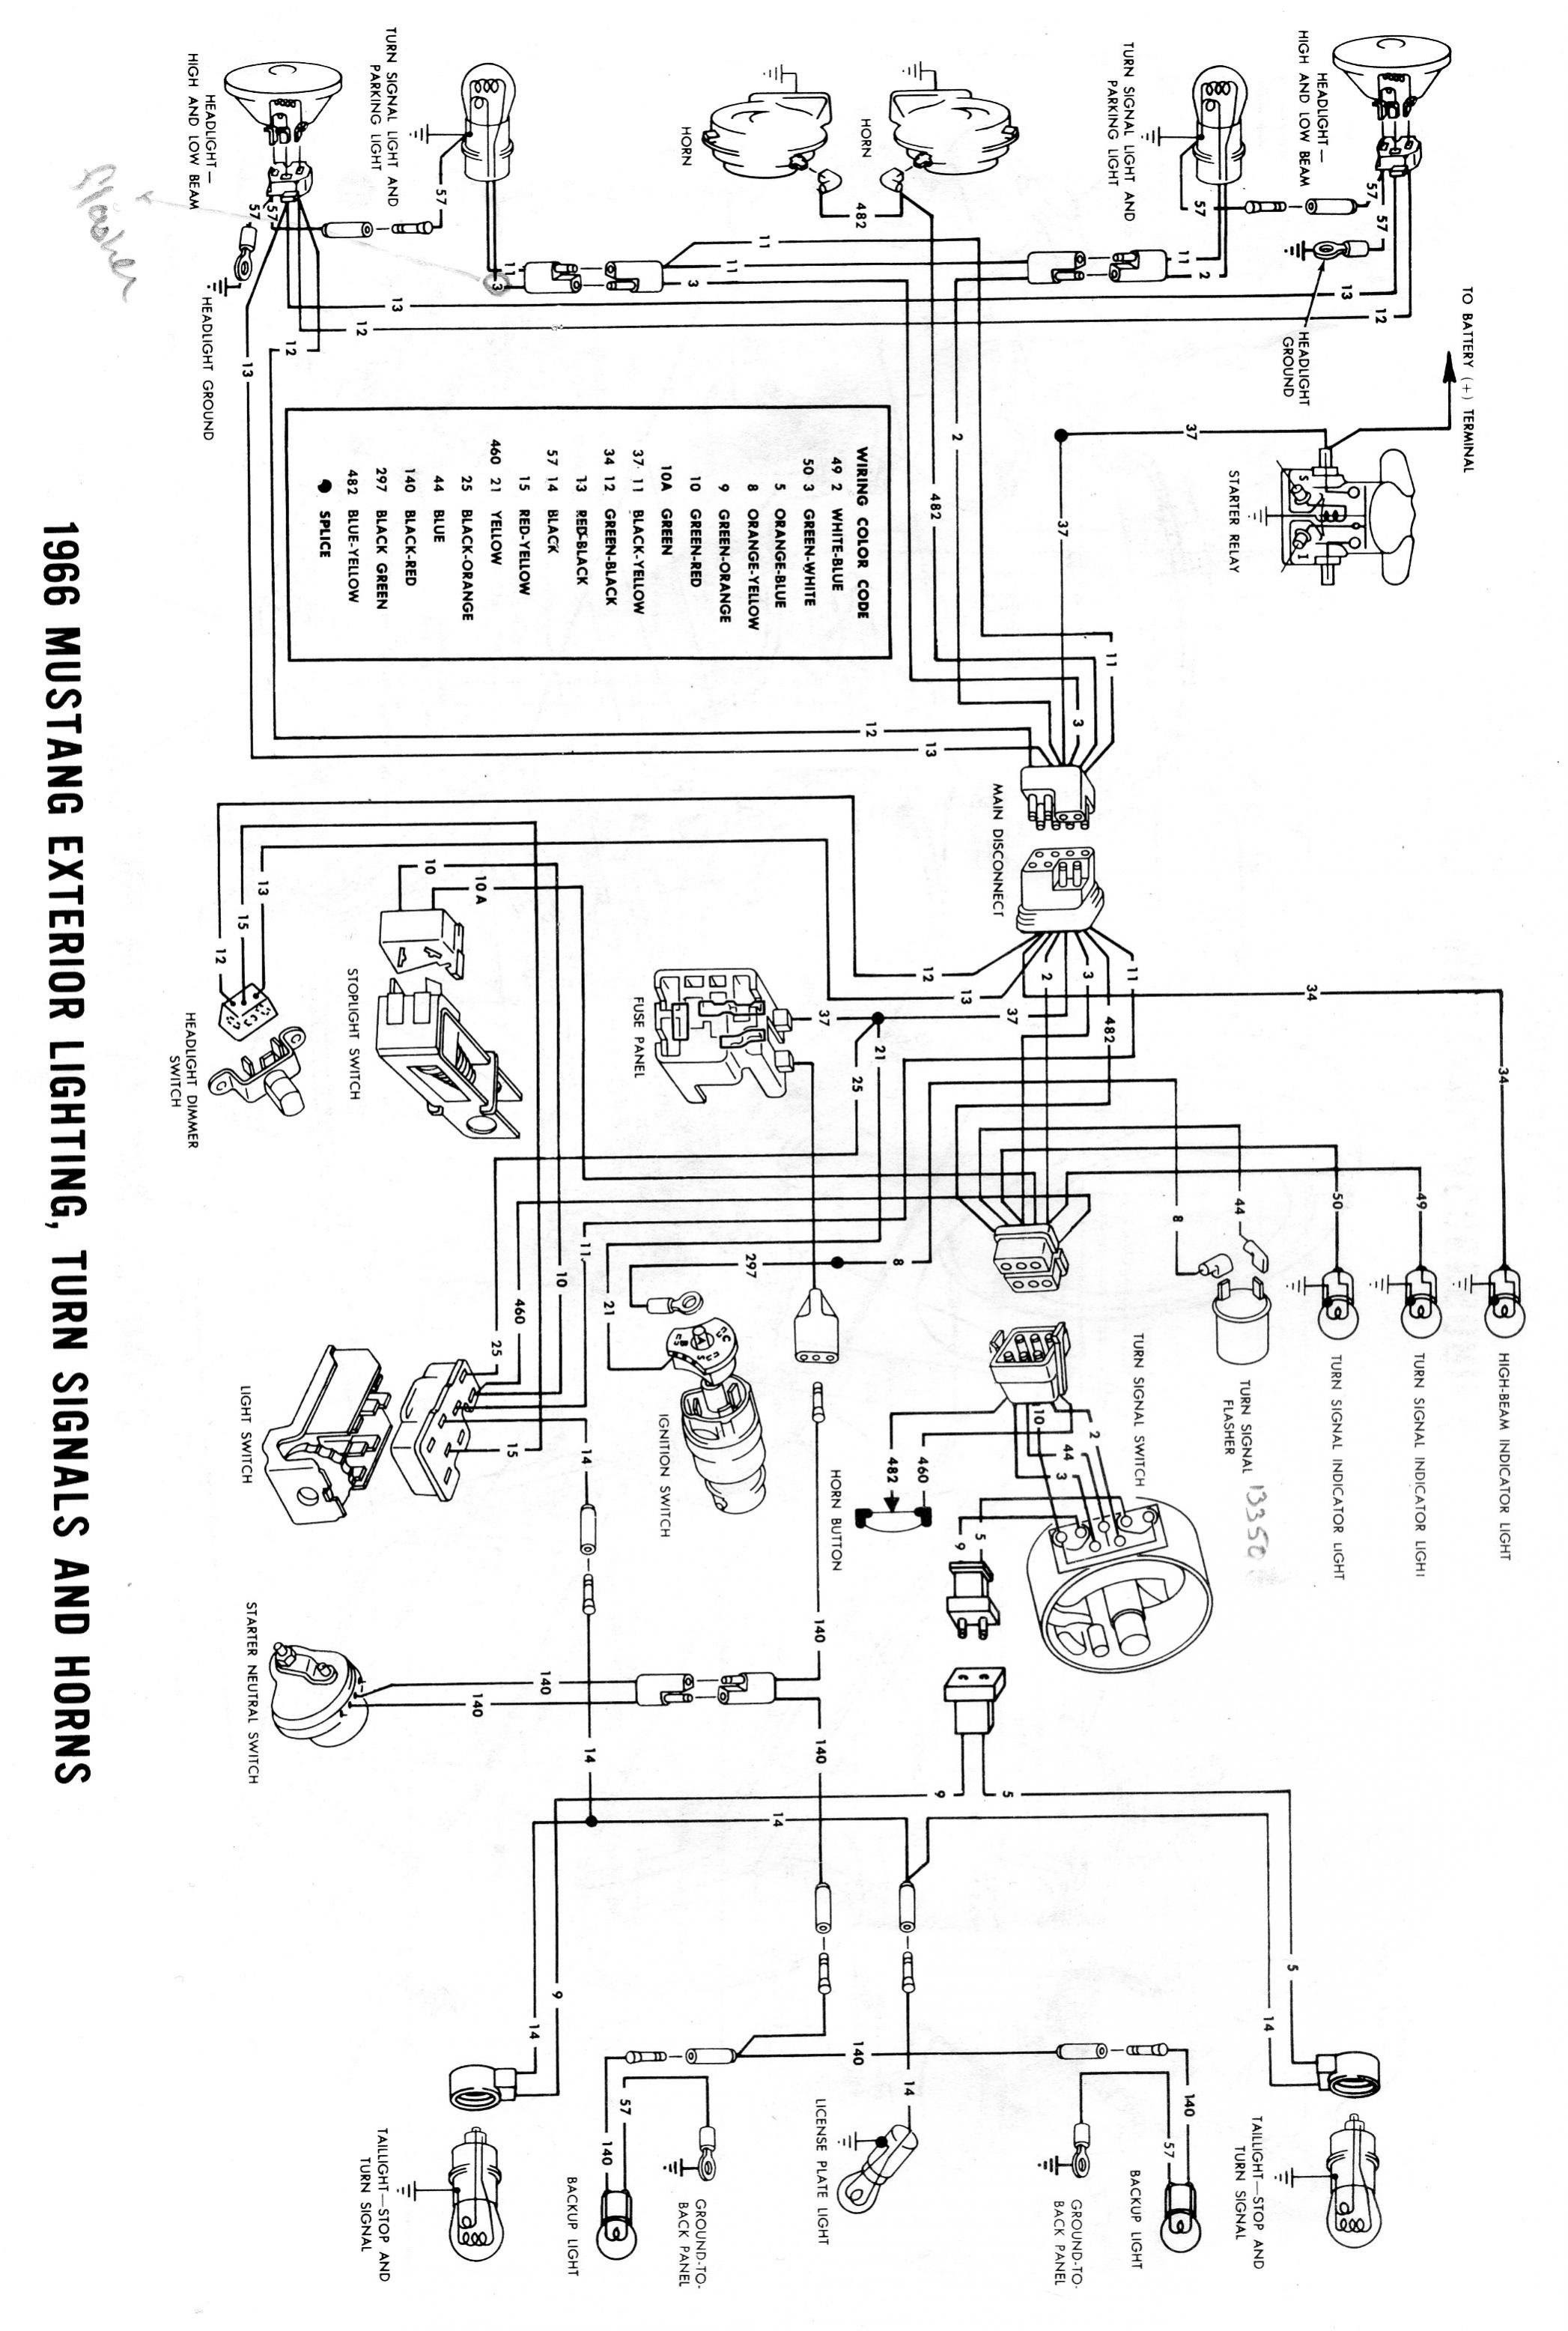 Diagram 1965 Mustang Headlight Switch Wiring Diagram Full Version Hd Quality Wiring Diagram Toro As4a Fr